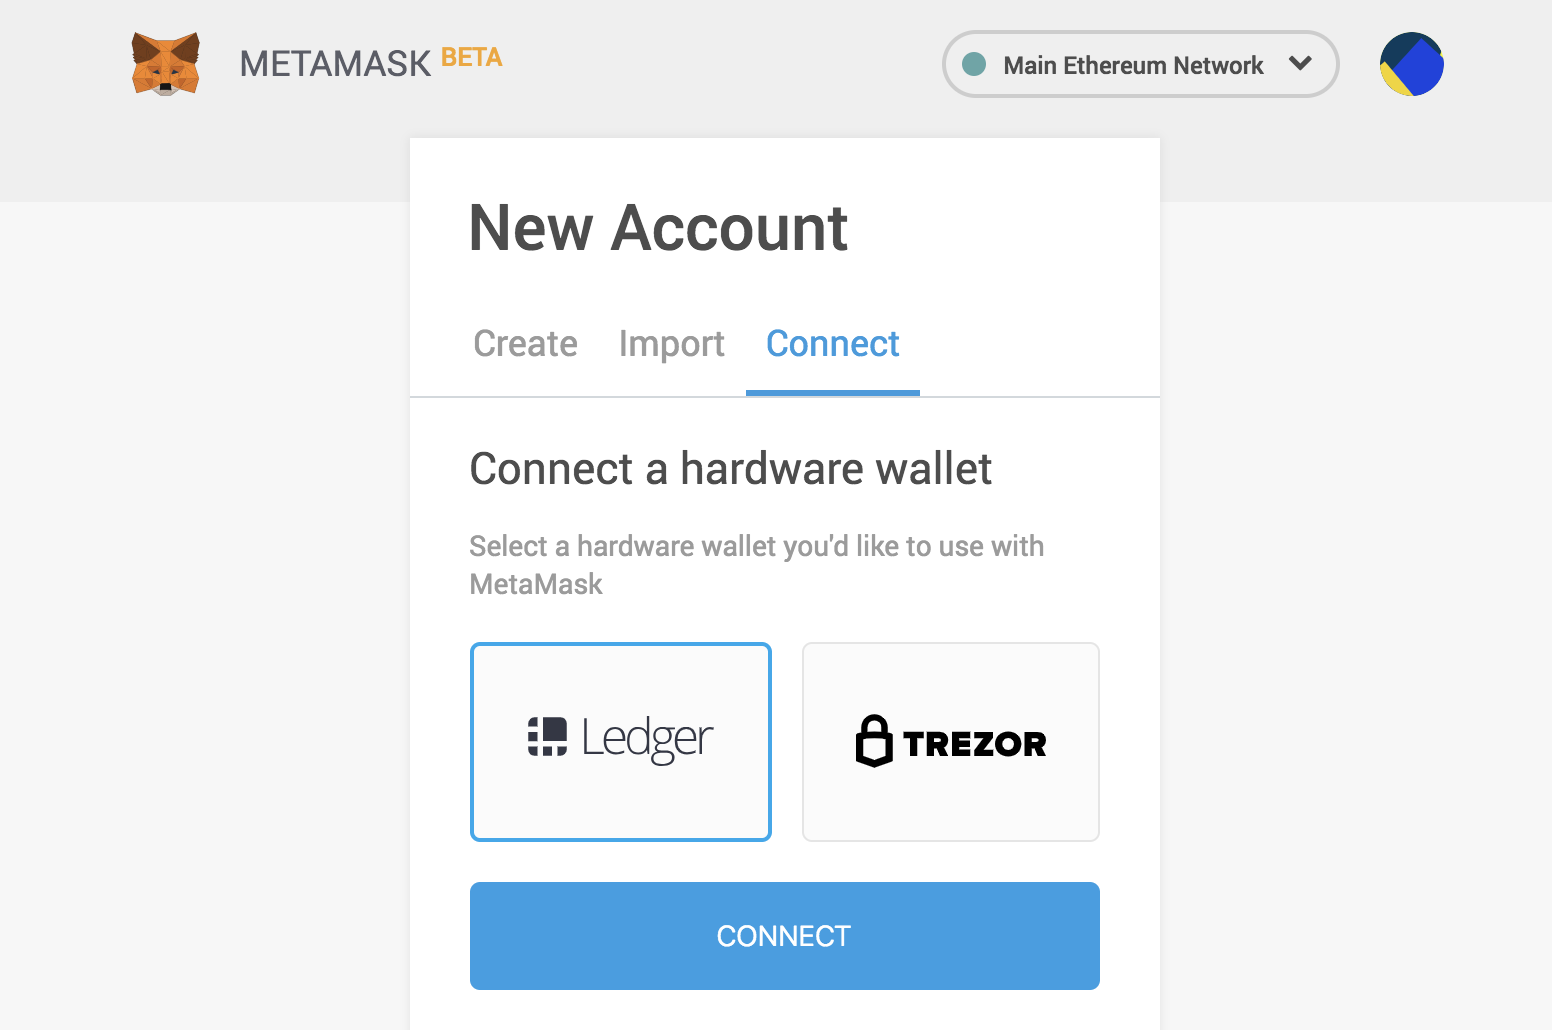 MetaMask now supports Ledger Hardware Wallets